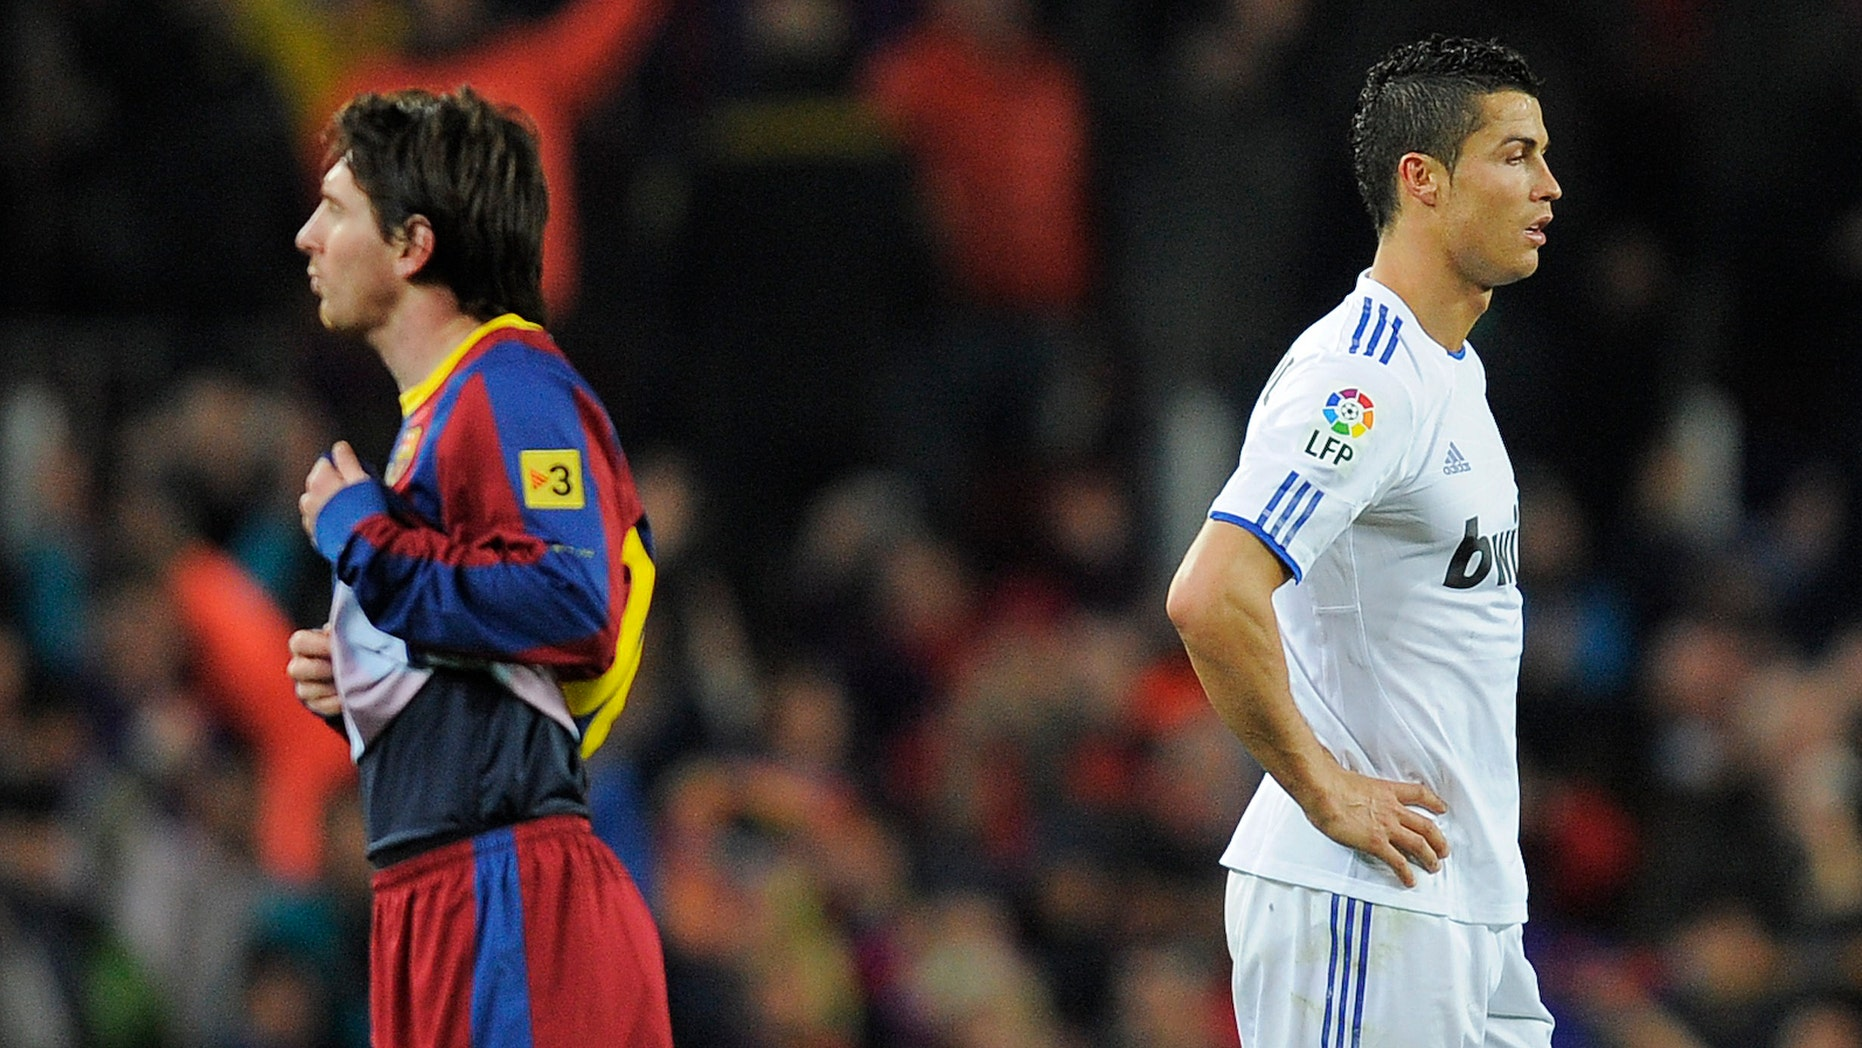 BARCELONA, SPAIN - NOVEMBER 29:  Cristiano Ronaldo of Real Madrid (R) and Lionel Messi of FC Barcelona look on during the La Liga match between Barcelona and Real Madrid at the Camp Nou Stadium on November 29, 2010 in Barcelona, Spain.  Barcelona won the match 5-0.  (Photo by David Ramos/Getty Images)